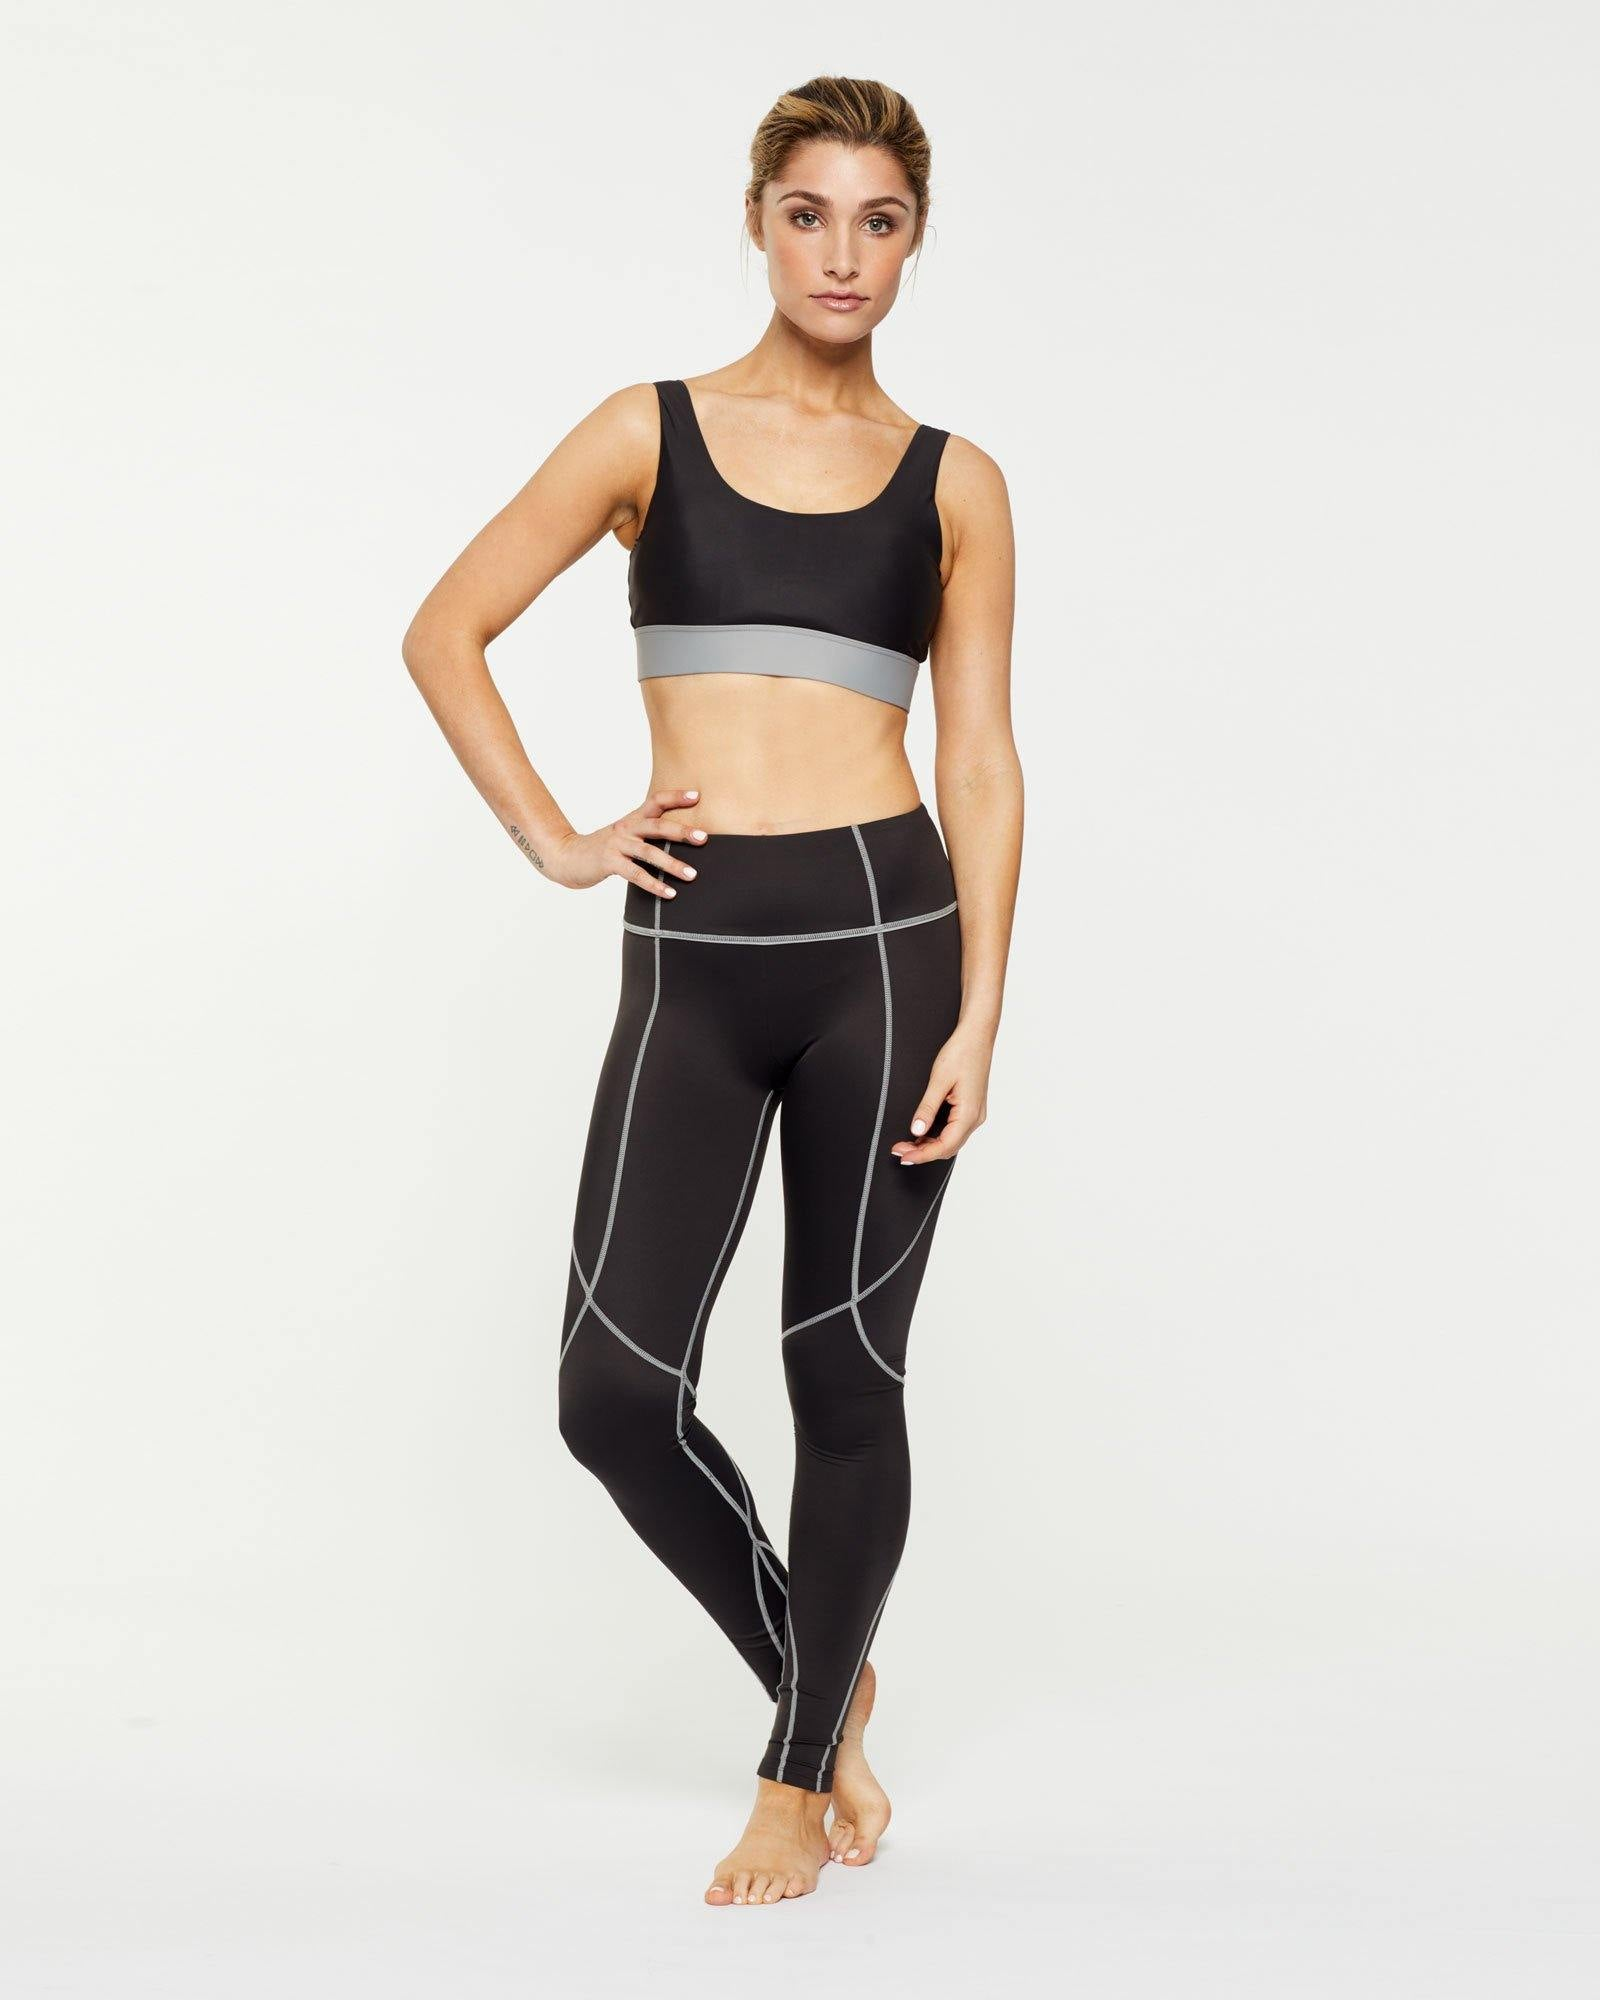 Steely Pectoralis crop bra top worn with Vastus mid waist long legging, front view